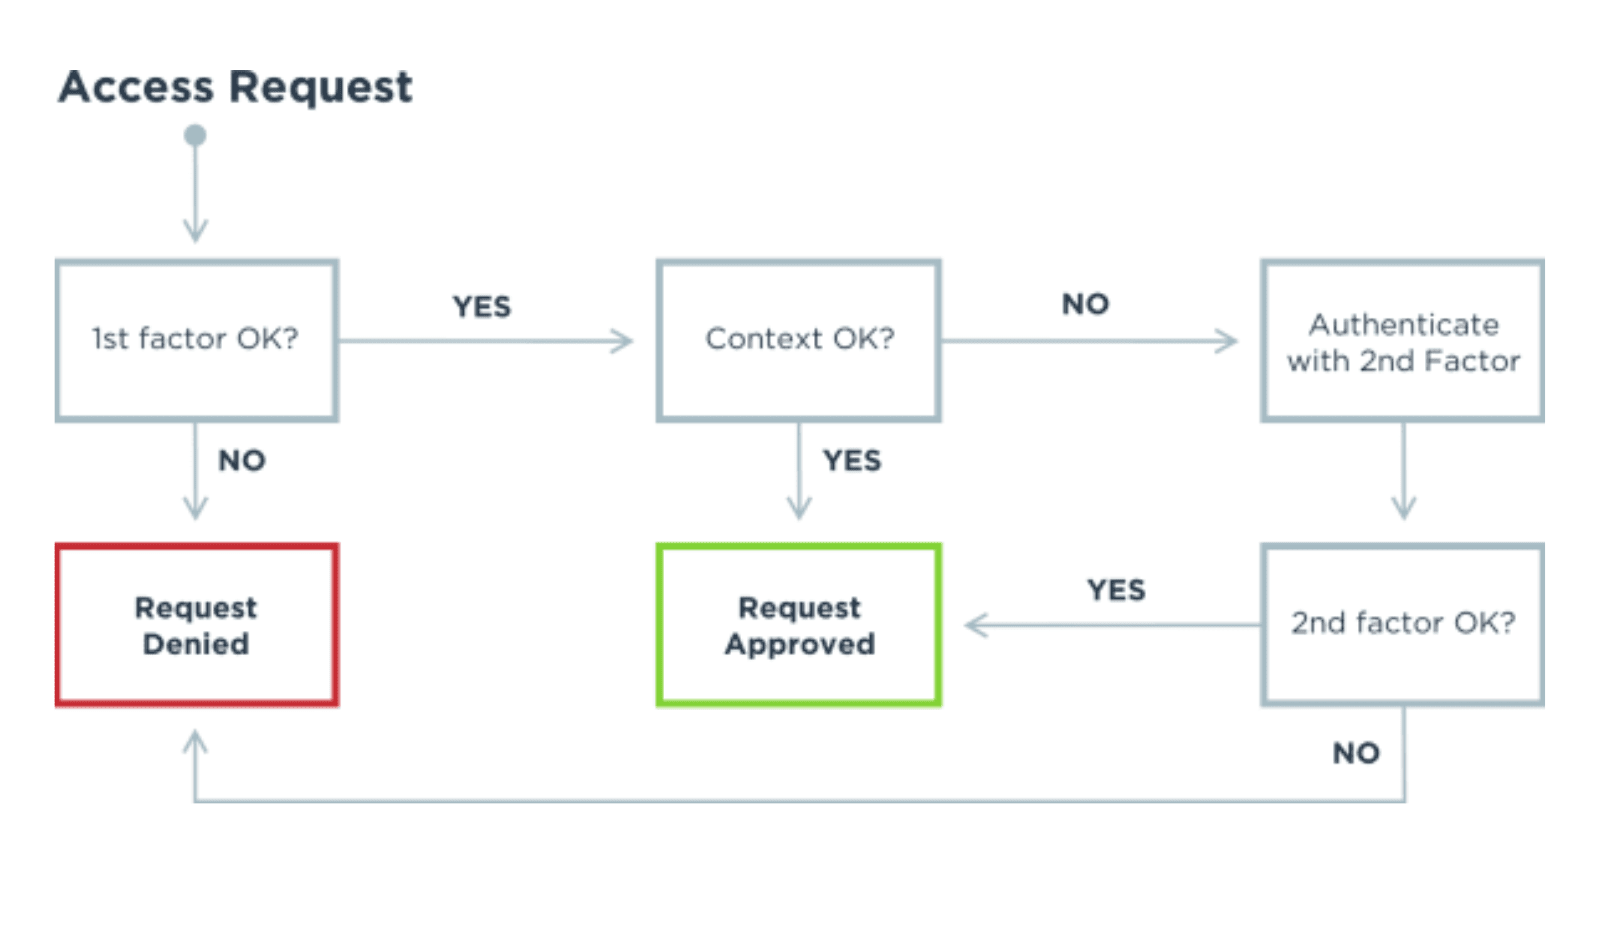 A diagram illustrating how an access request works wiith MFA